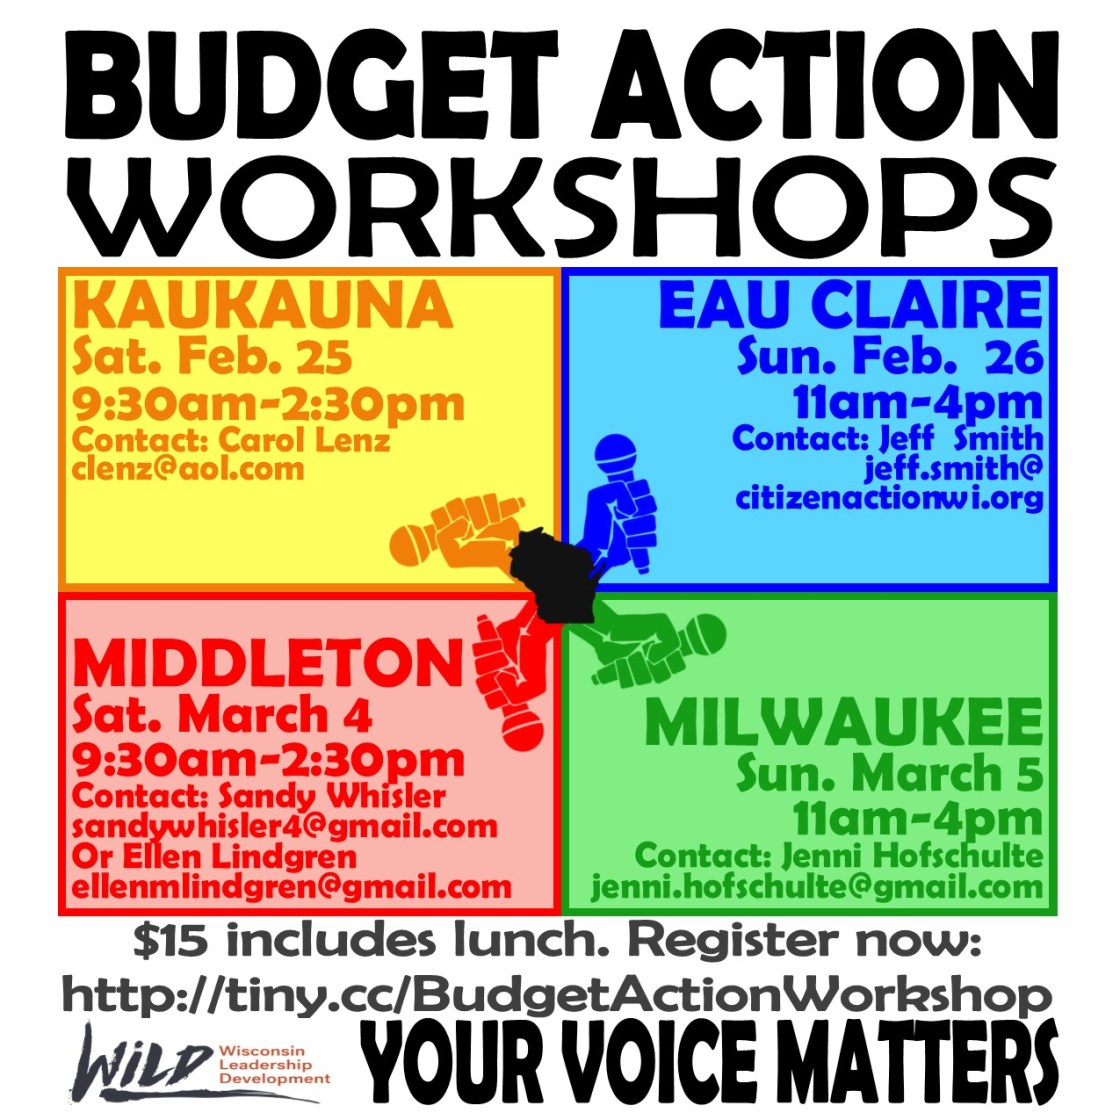 Budget Workshop STATEWIDE GRAPHIC